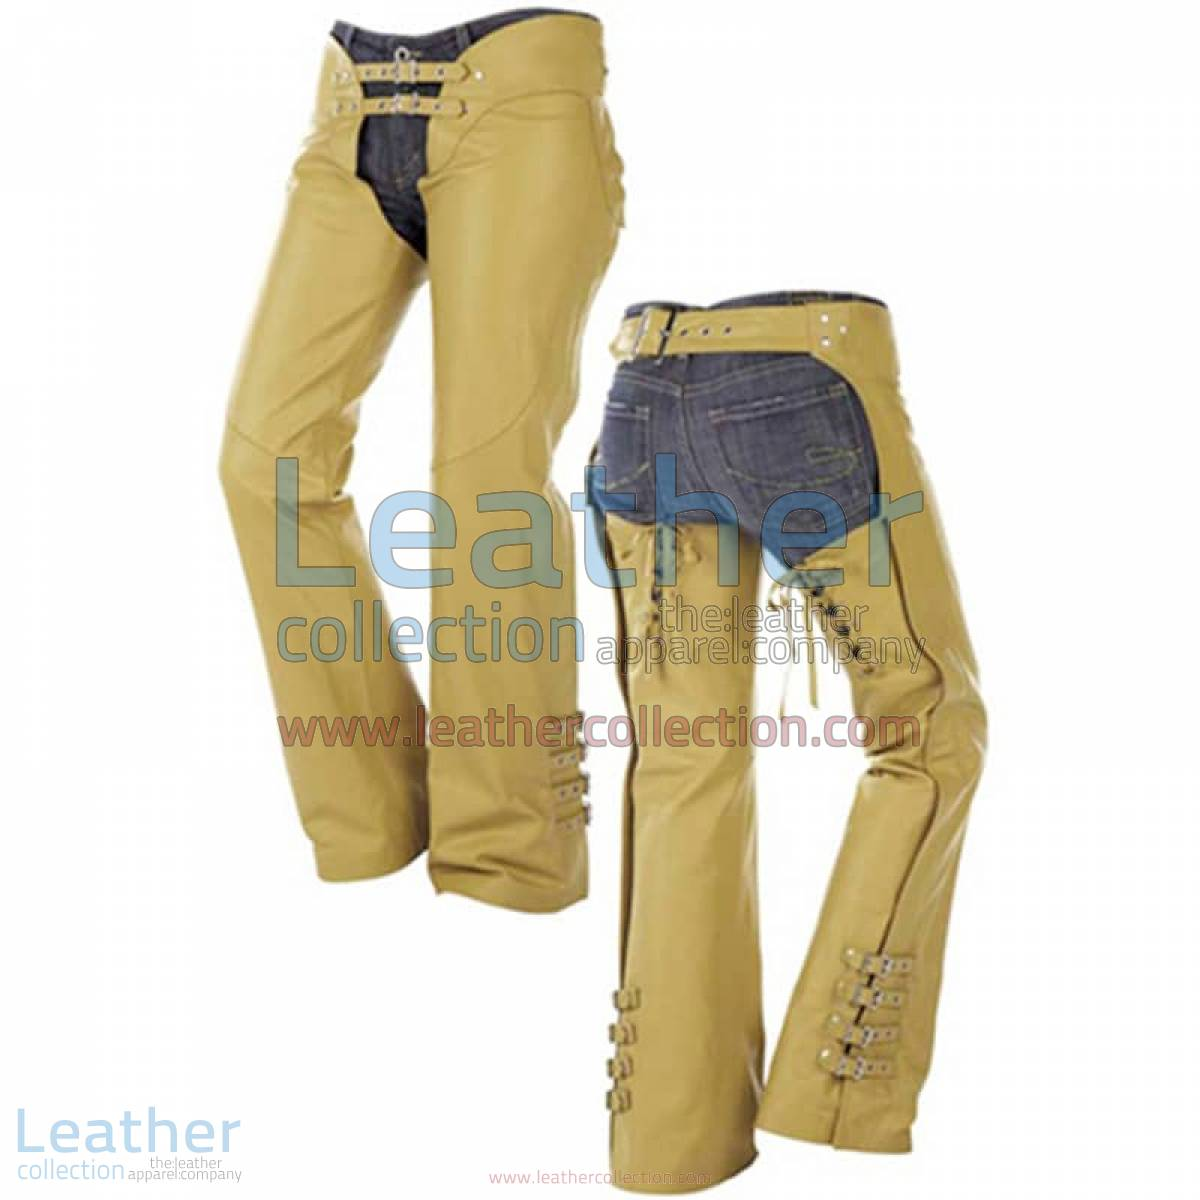 Buckles on Legs Leather Cowboy Chaps | leather cowboy chaps